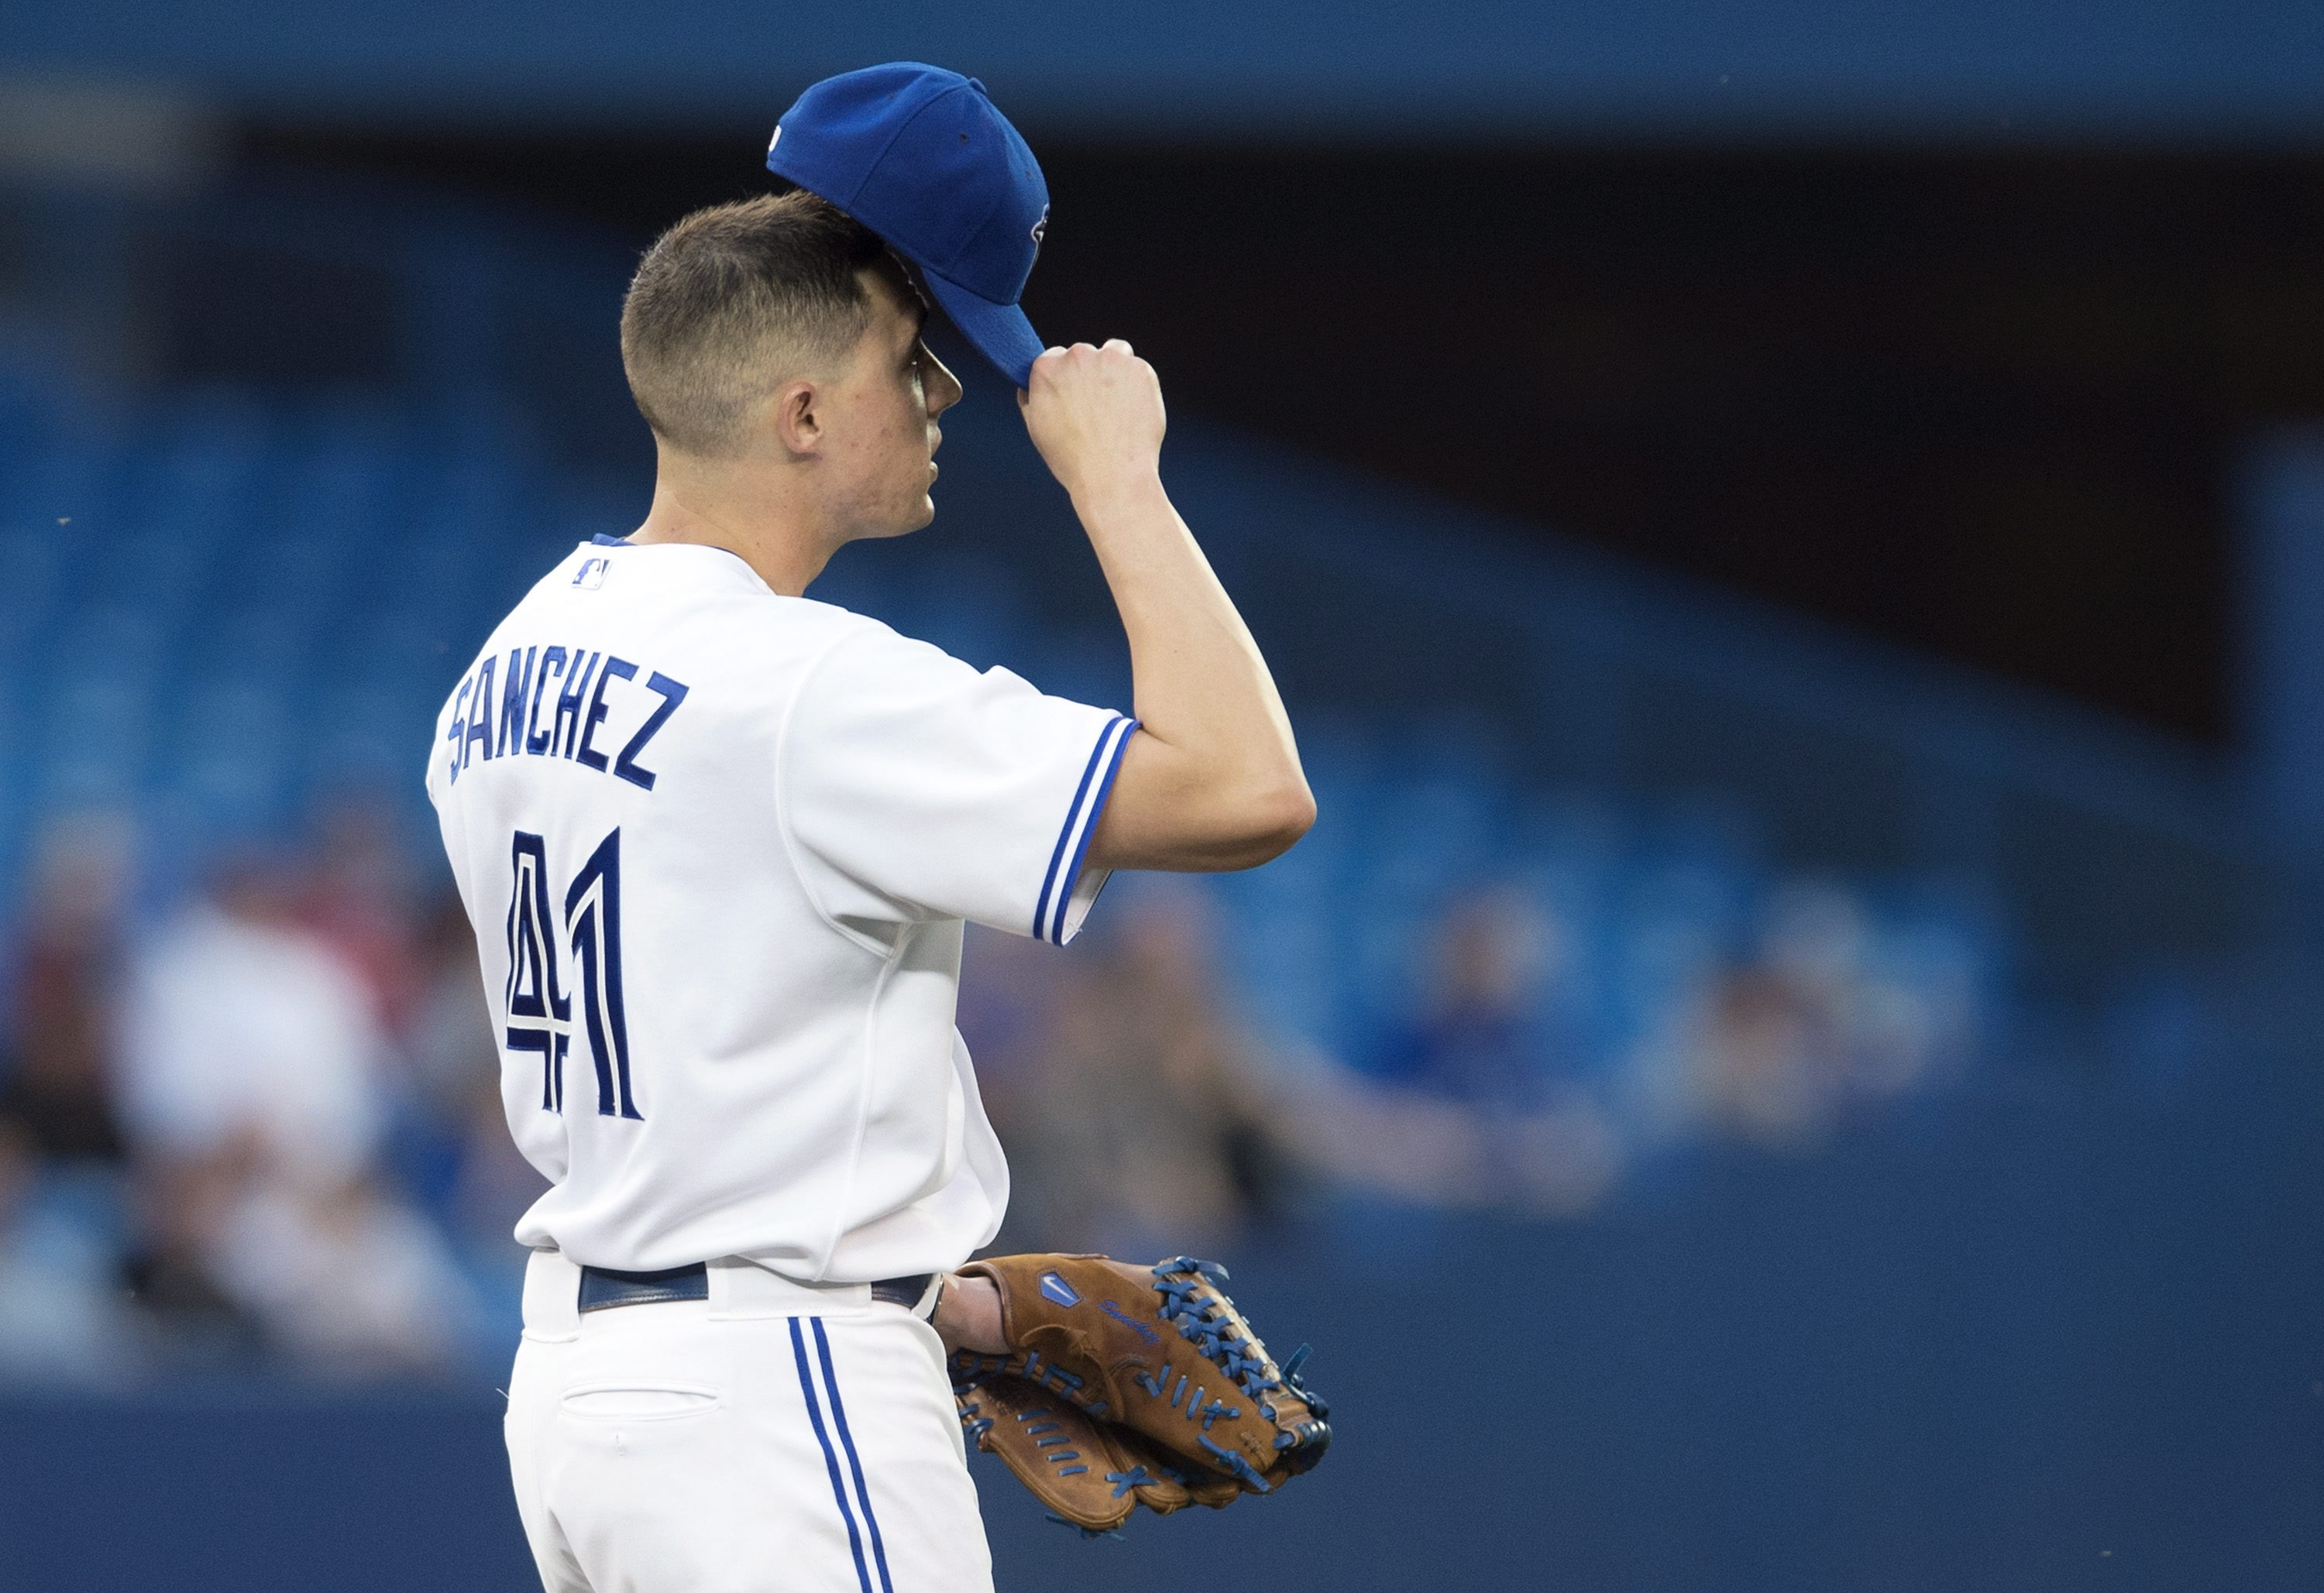 Toronto Blue Jays starting pitcher Aaron Sanchez reacts after walking two straight batters during fourth-inning MLB baseball game action against the Boston Red Sox in Toronto on Friday, May 8, 2015. (Darren Calabrese/The Canadian Press via AP) MANDATORY C